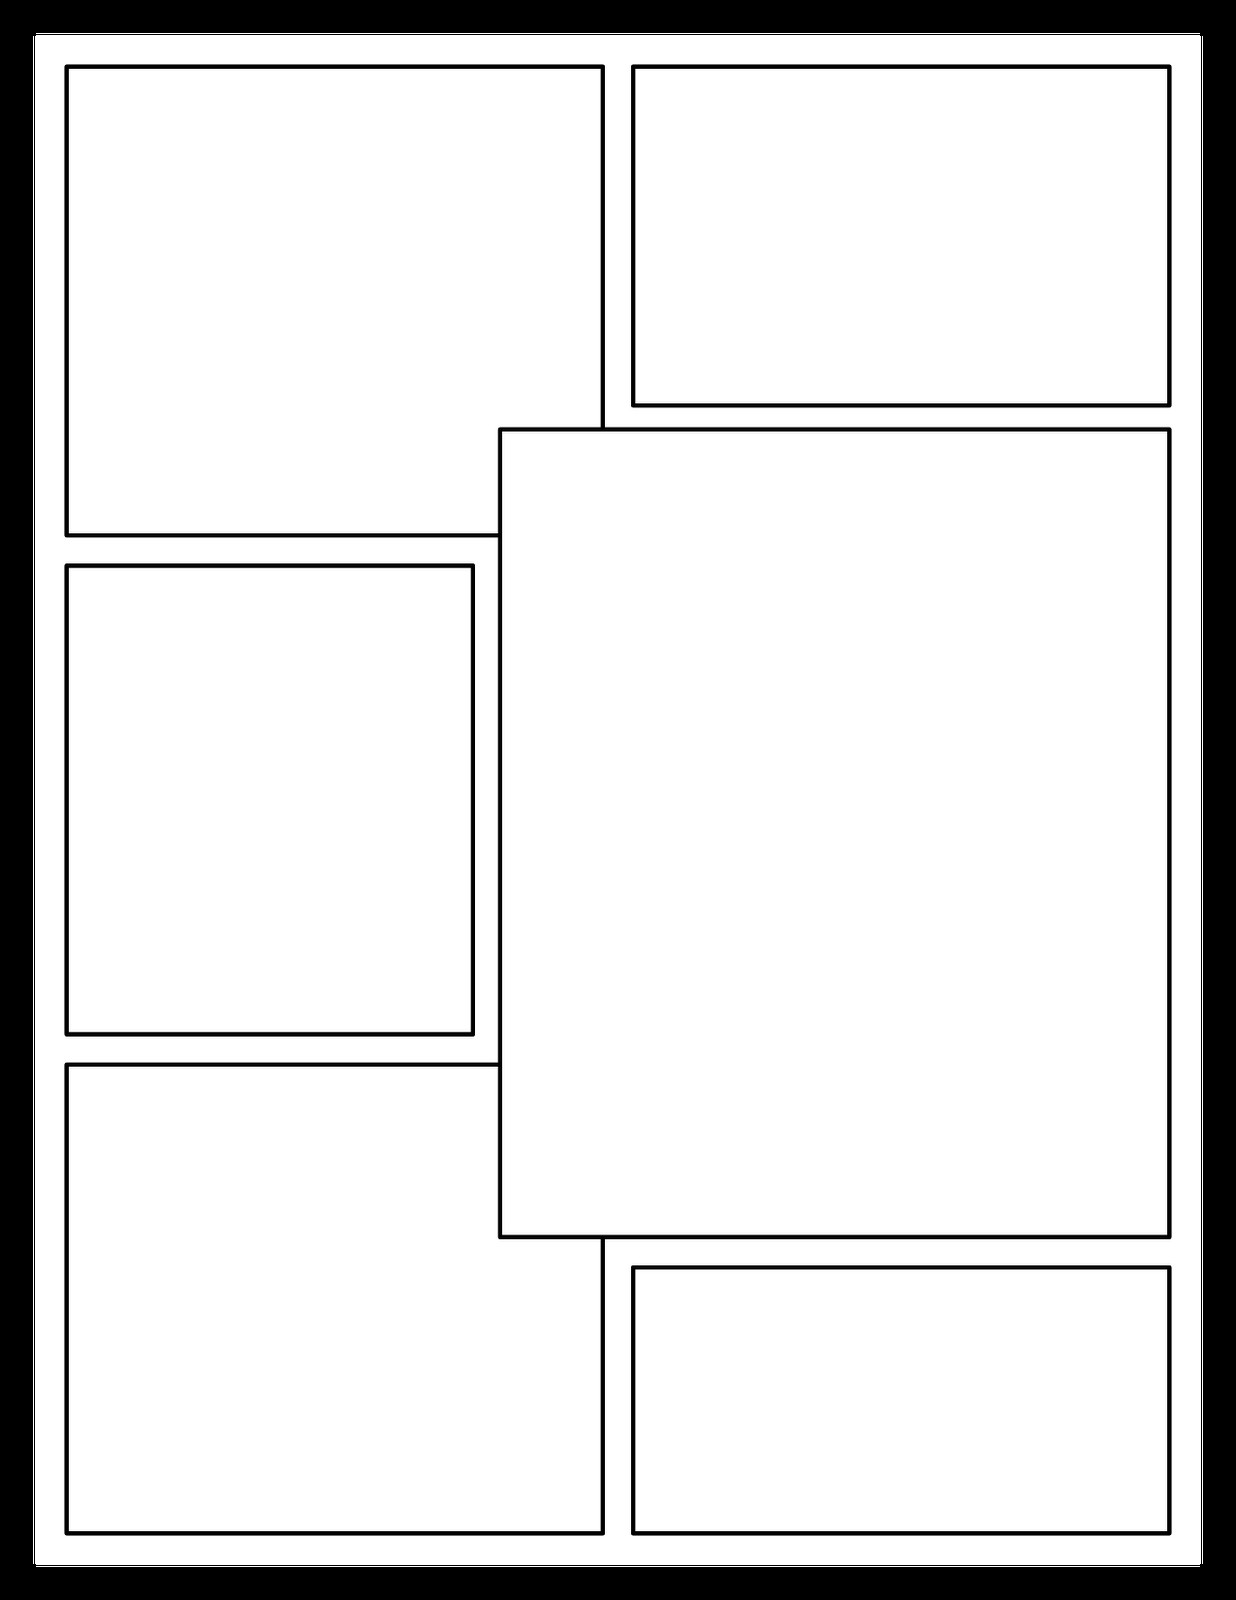 Comic Book Panel Template Mrs orman S Classroom Fering Choices for Your Readers